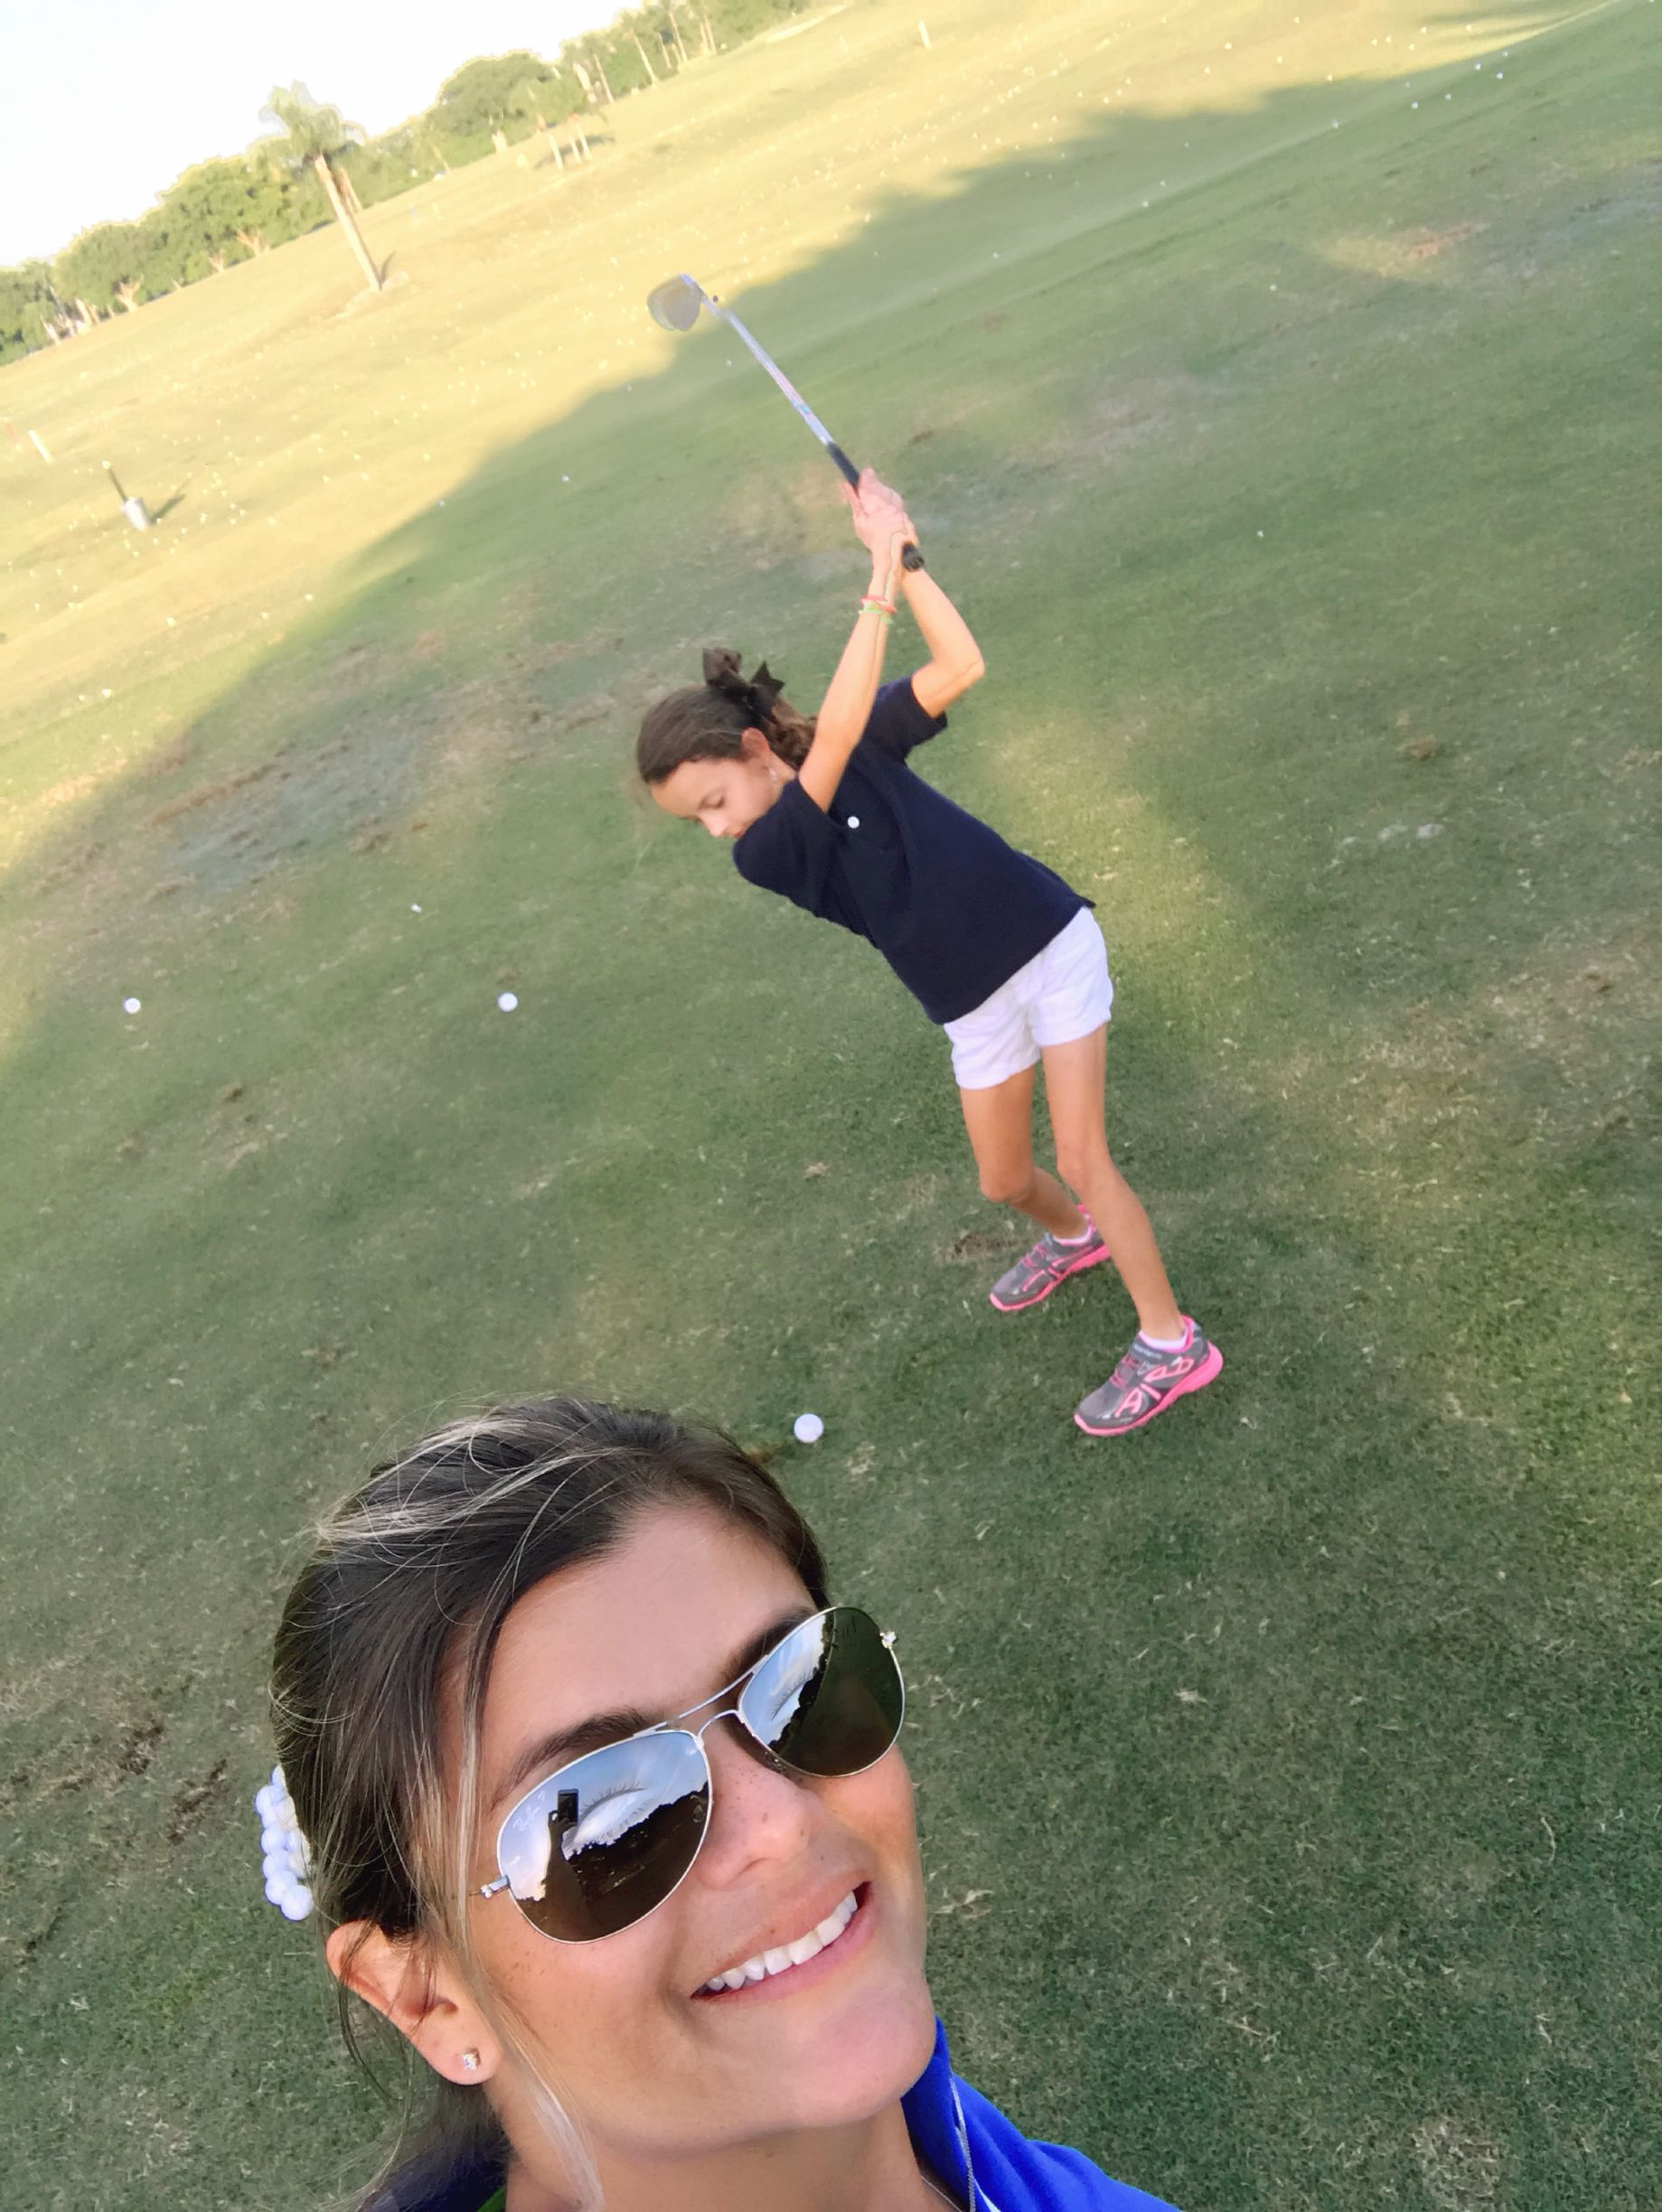 Pin by Valeria Brannen on My golf academy (With images